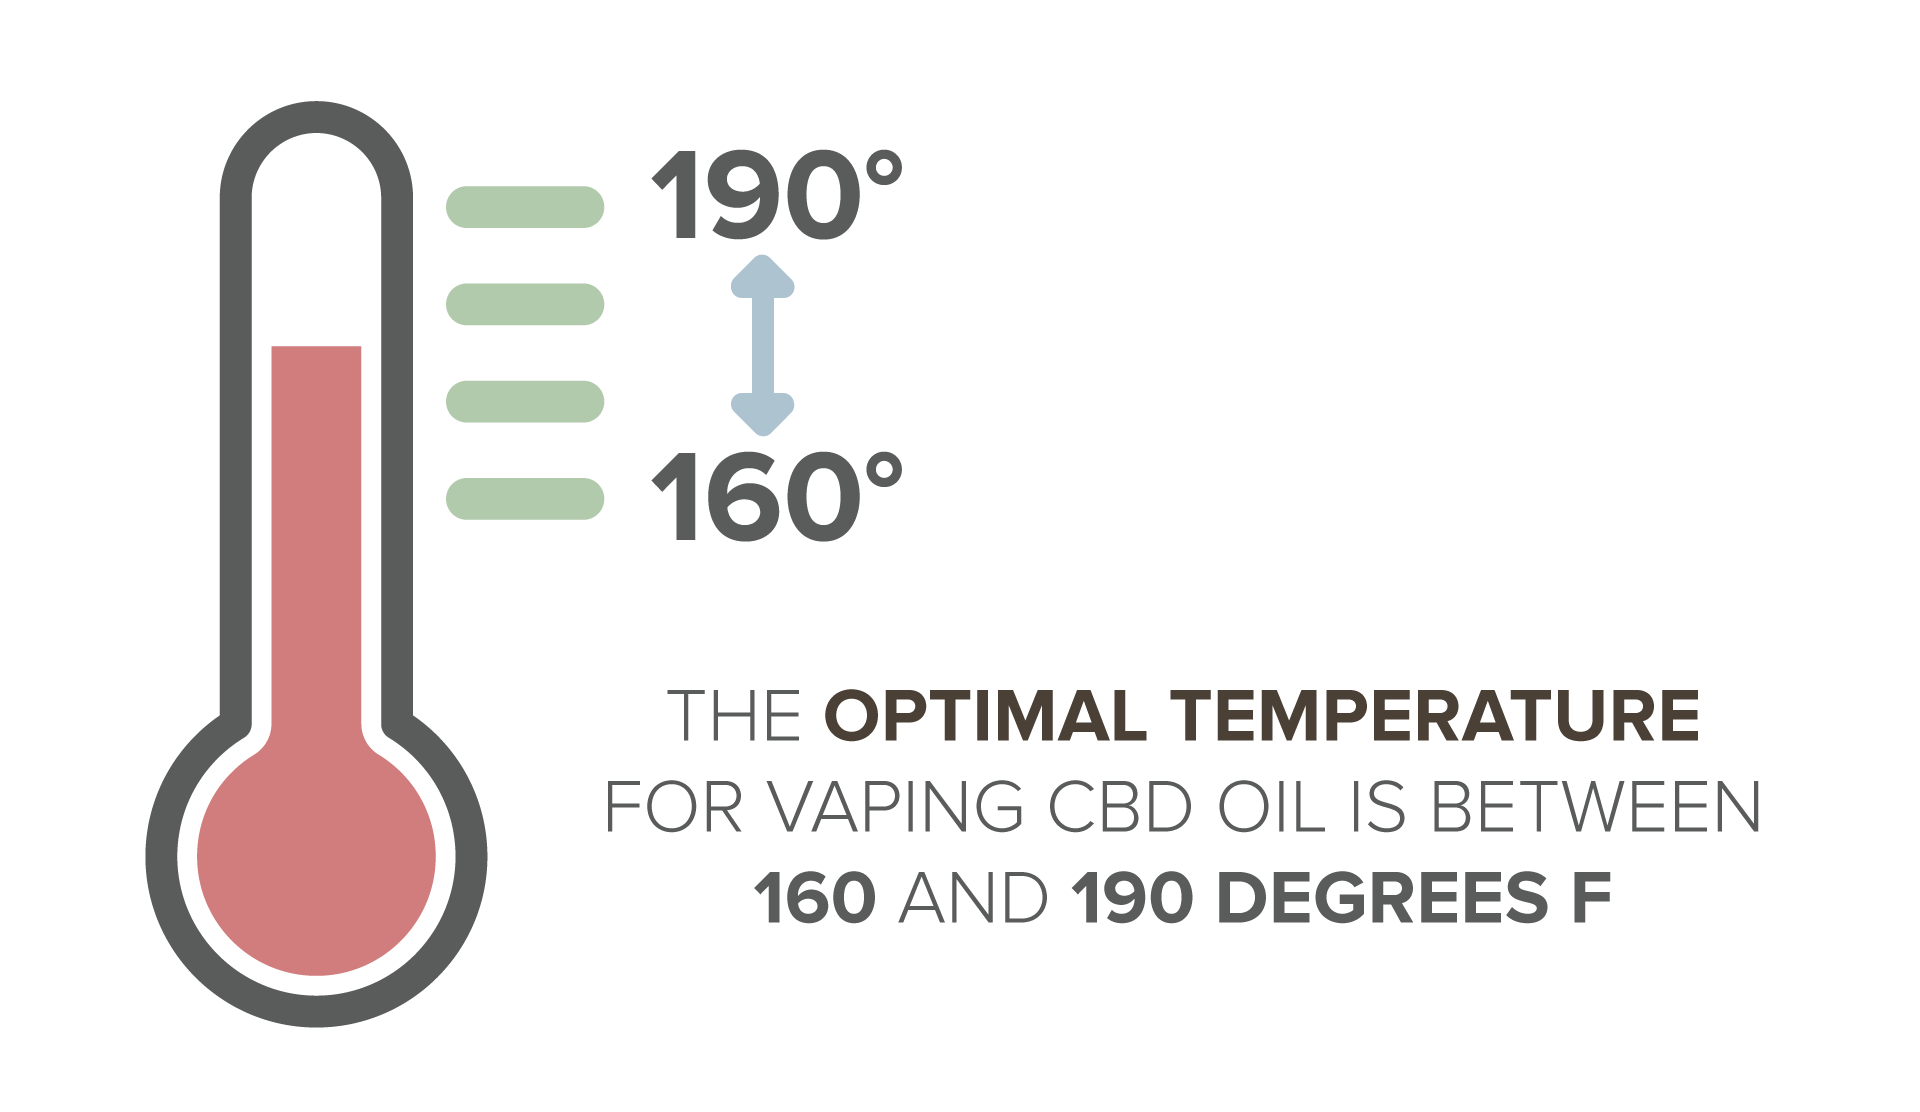 The optimal temperature for vaping CBD oil